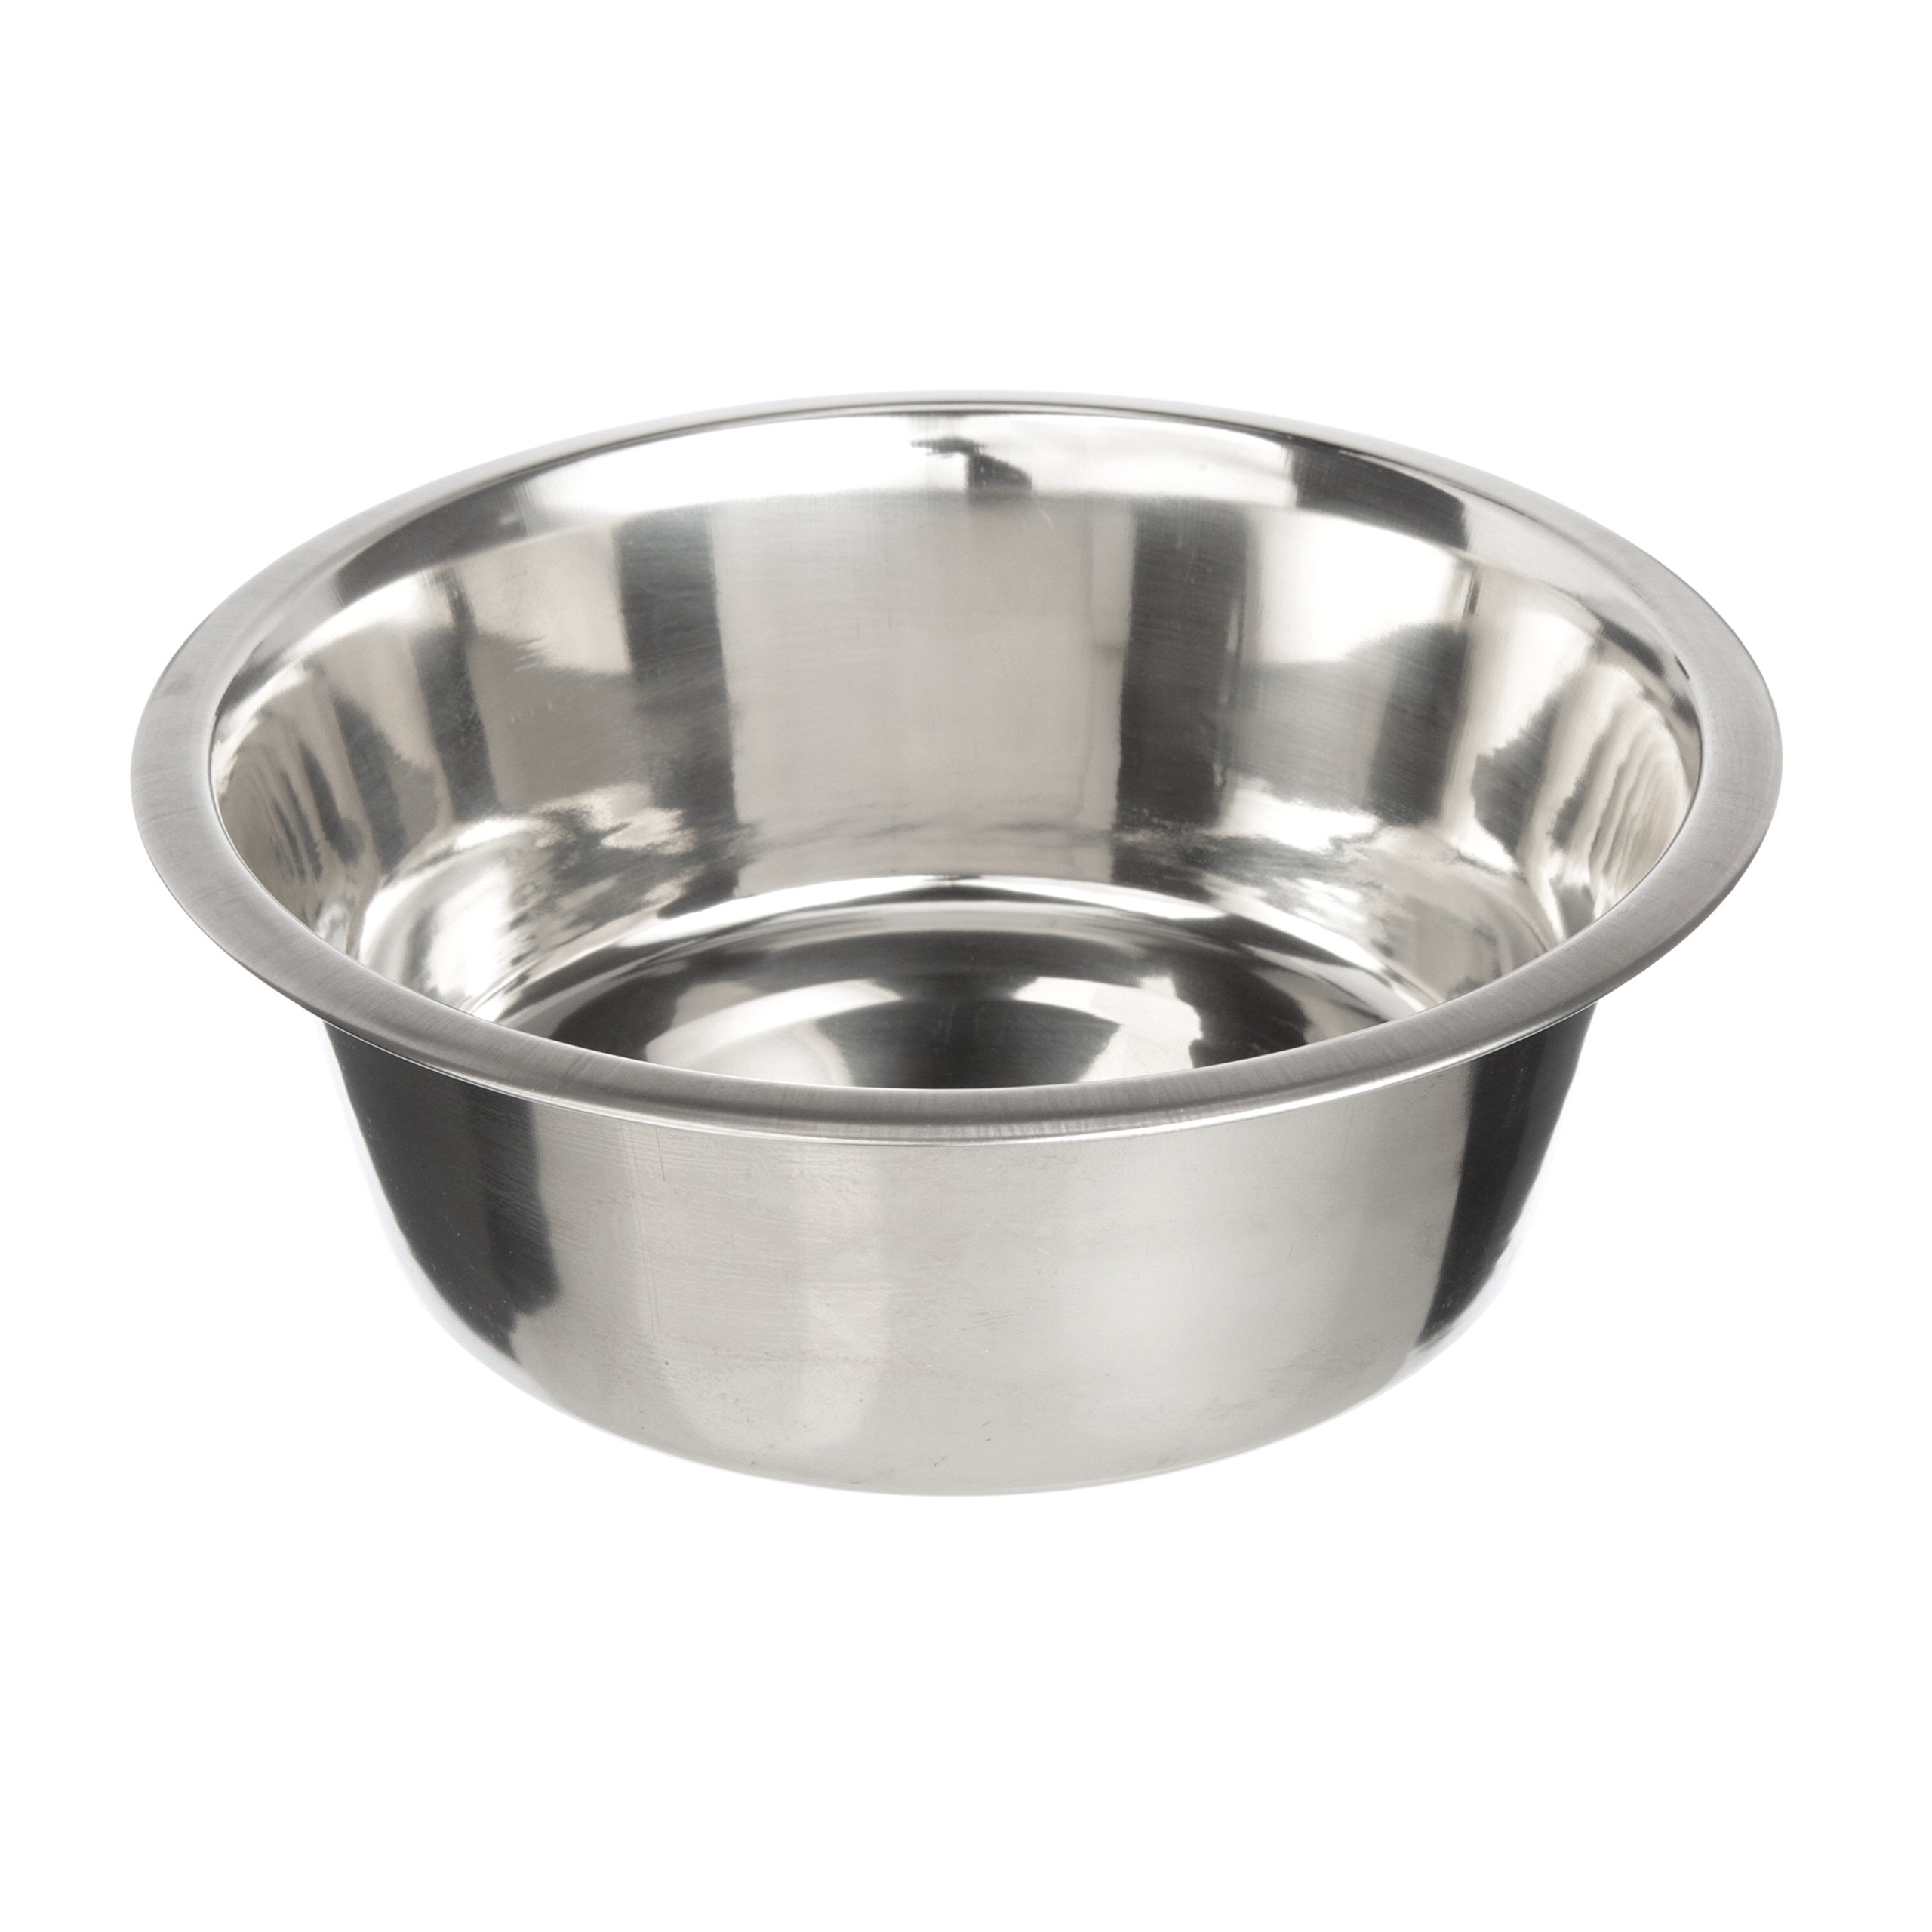 Stainless Steel Dog and Cat Bowls - Neater Feeder Deluxe or Express Extra Replacement Bowl - Neater Pet Brands - (Metal Food and Water Dish) (7 Cup)